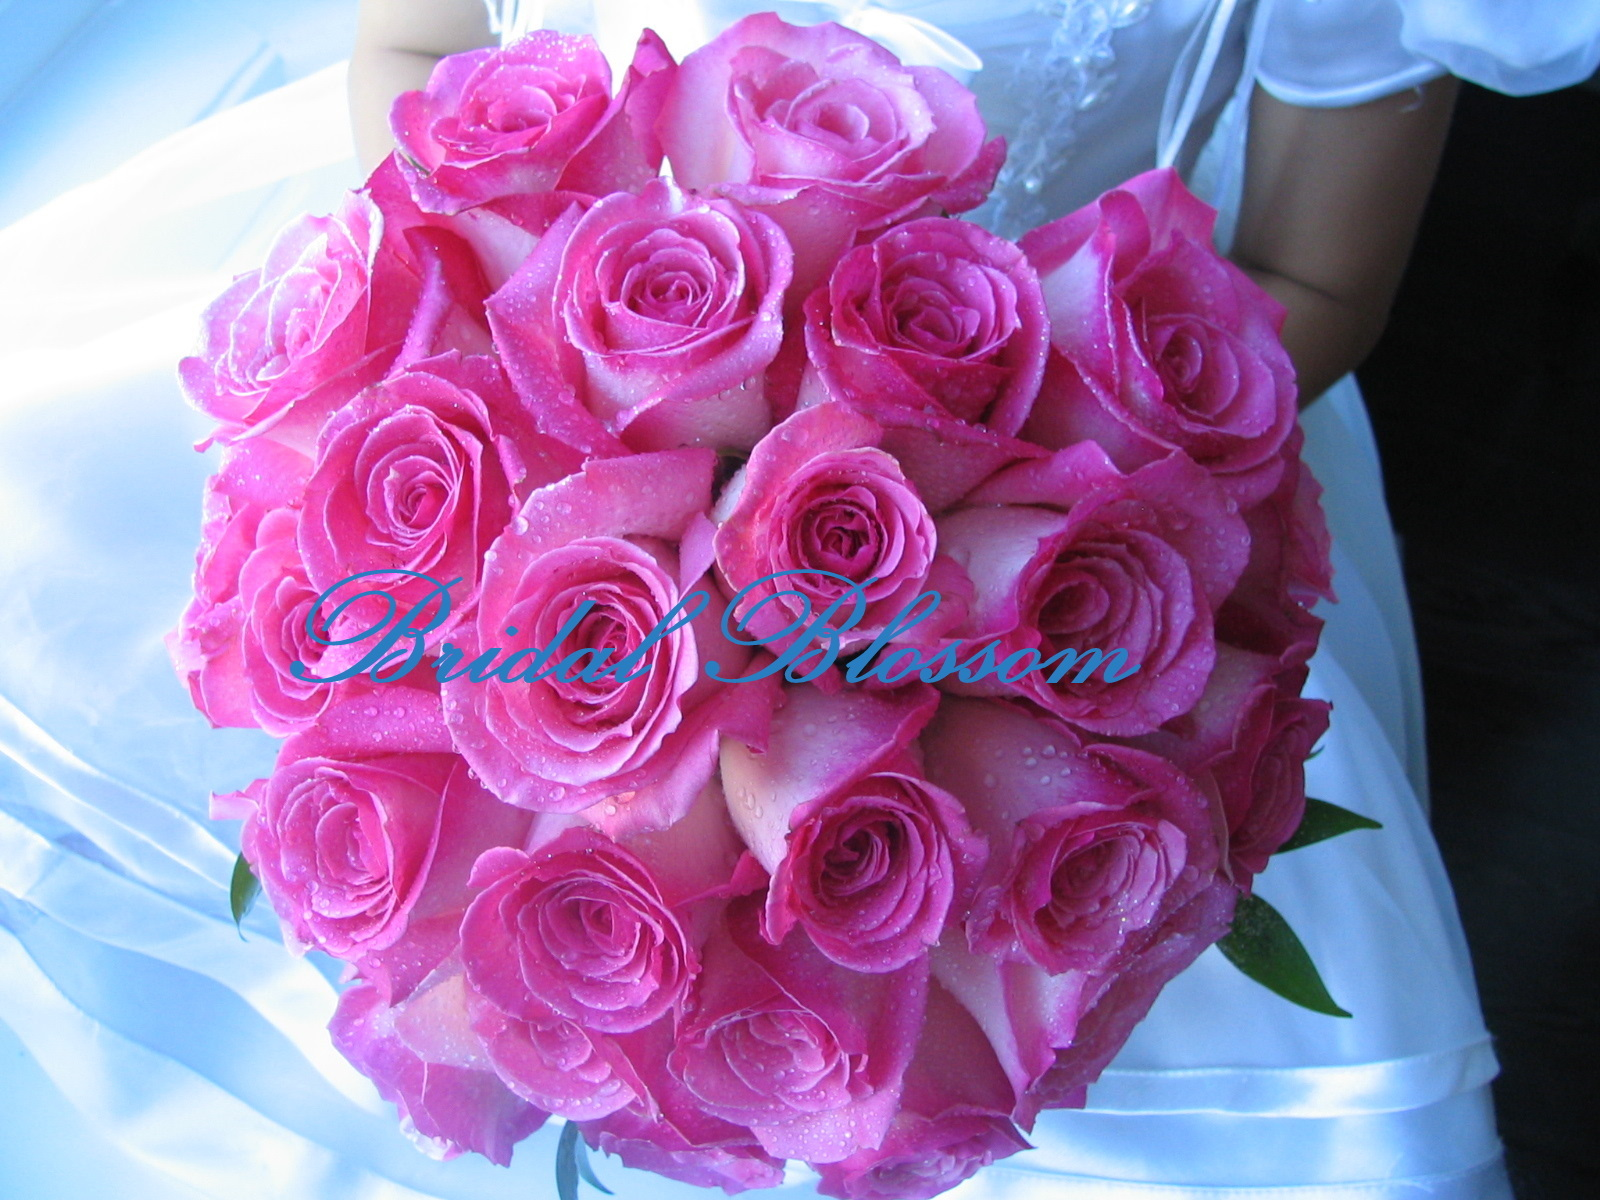 Flowers & Decor, pink, Bride Bouquets, Flowers, Bouquet, Wedding, Bridal, Blossom, Mississauga, Bridal blossom